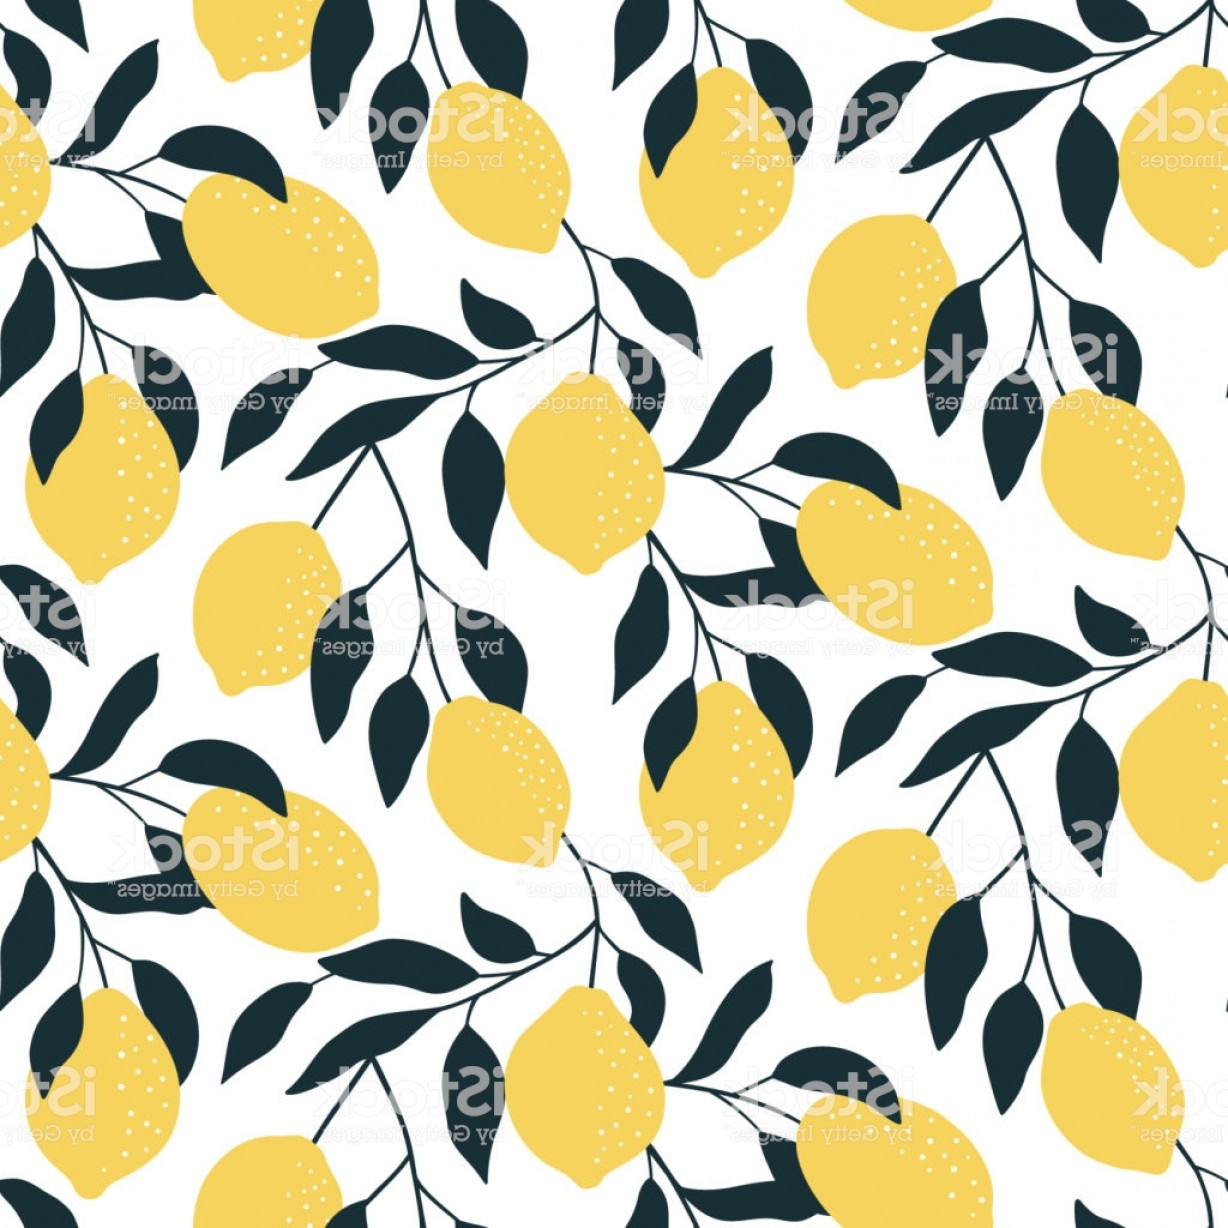 Vector Group Of Hands Overlapped: Seamless Pattern With Citrus Fruits Hand Drawn Overlapping Backdrop Modern Lemon Gm